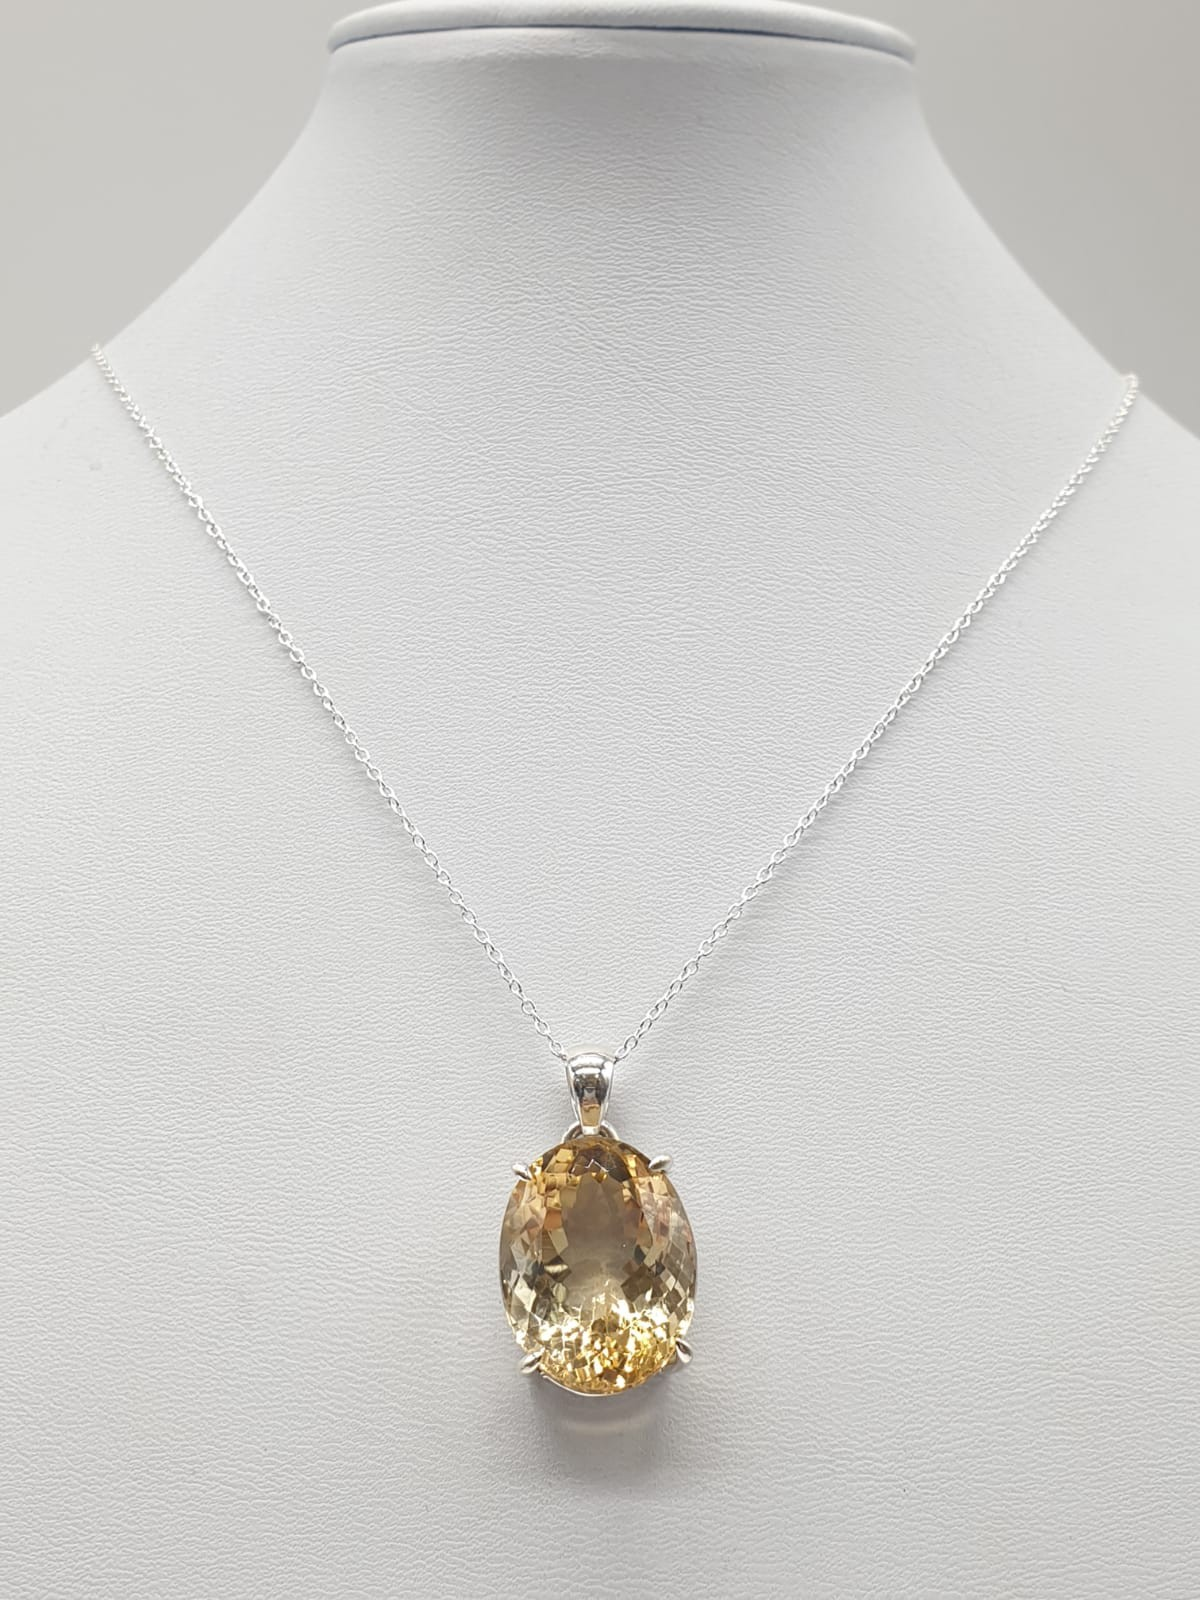 Citrine Gemstone Pendant set in Sterling Silver on a 40cm long silver chain, weight 10g approx and